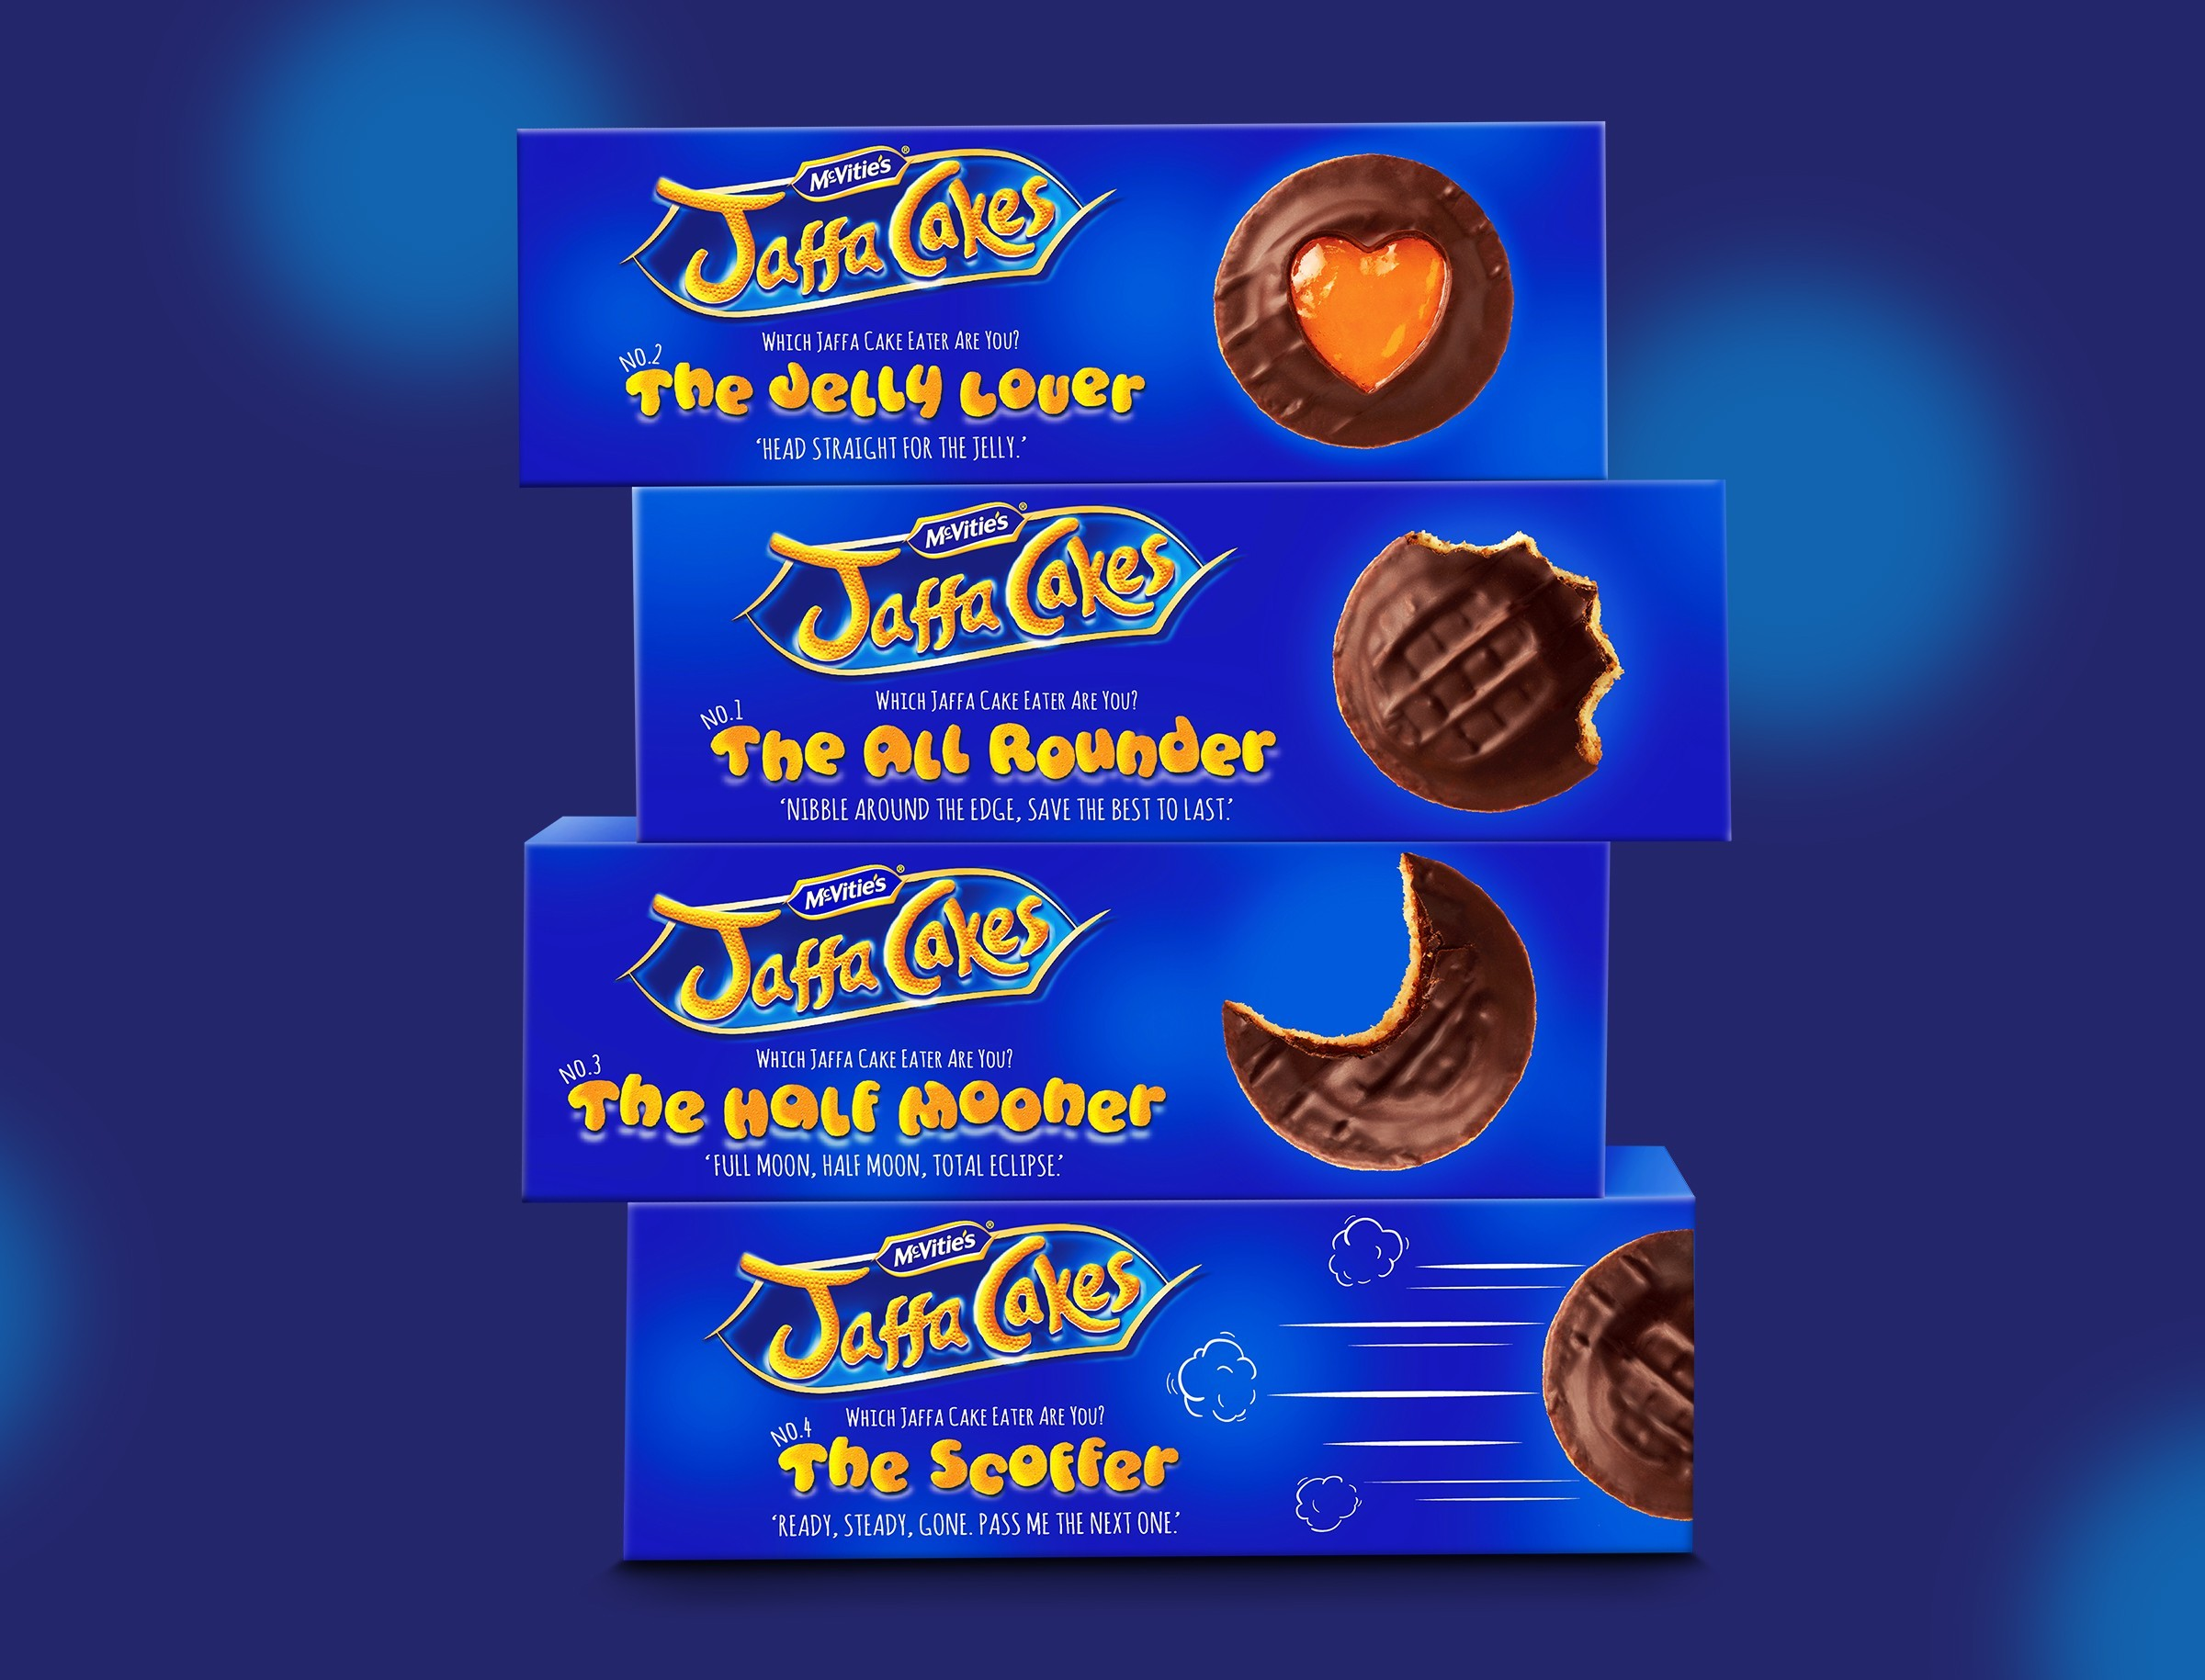 Anthem Brings Back Fun and Cheeky Personality for Jaffa Cakes Redesign